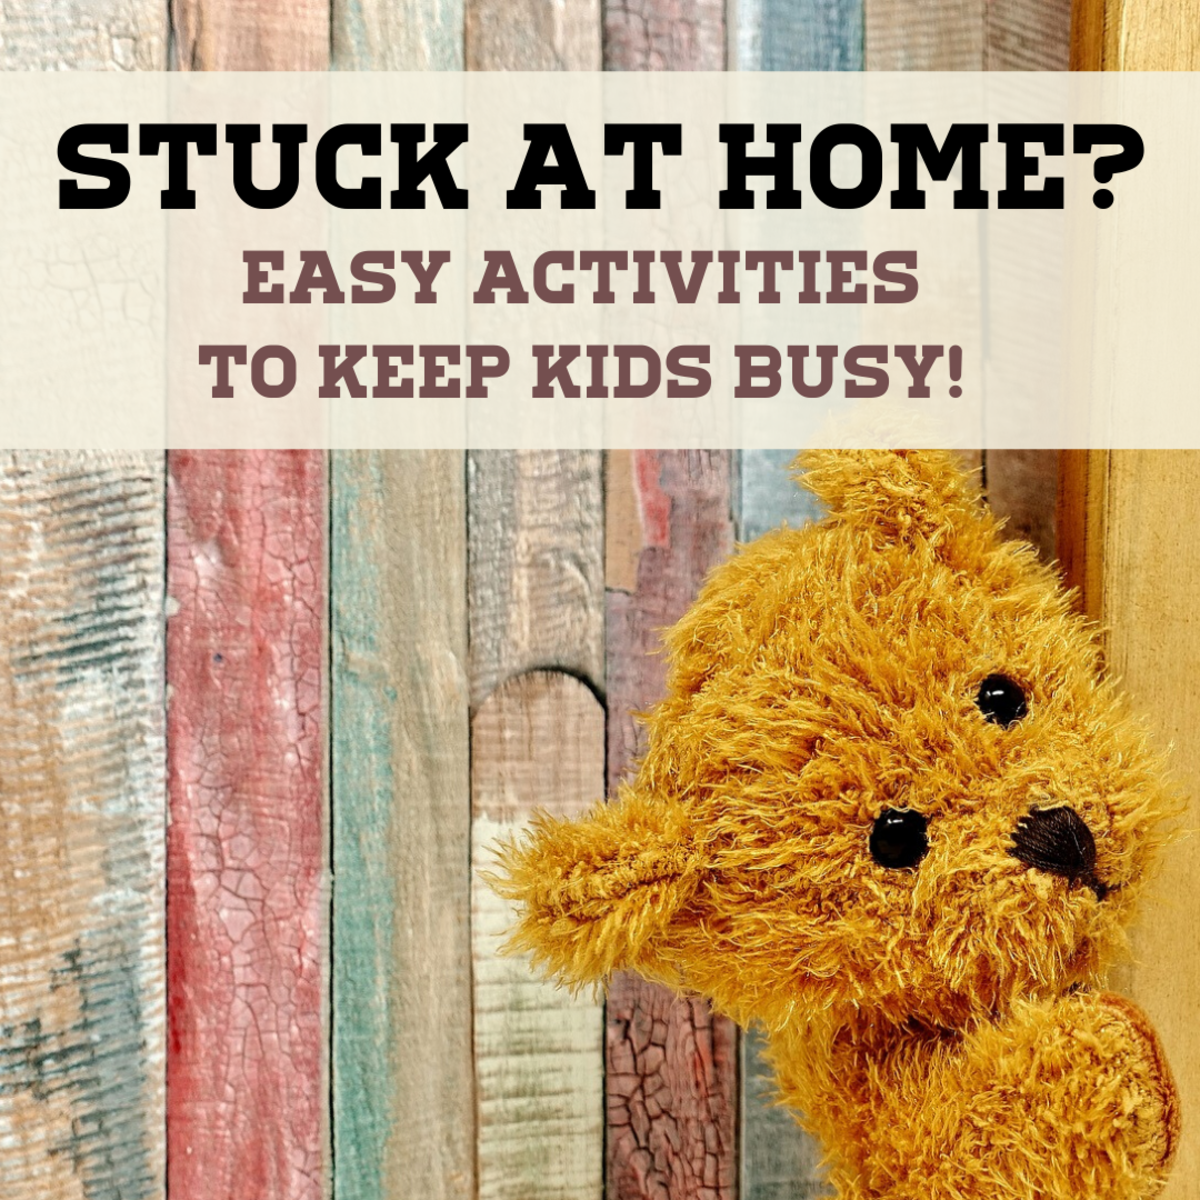 10 Easy Things to Do With Kids While at Home